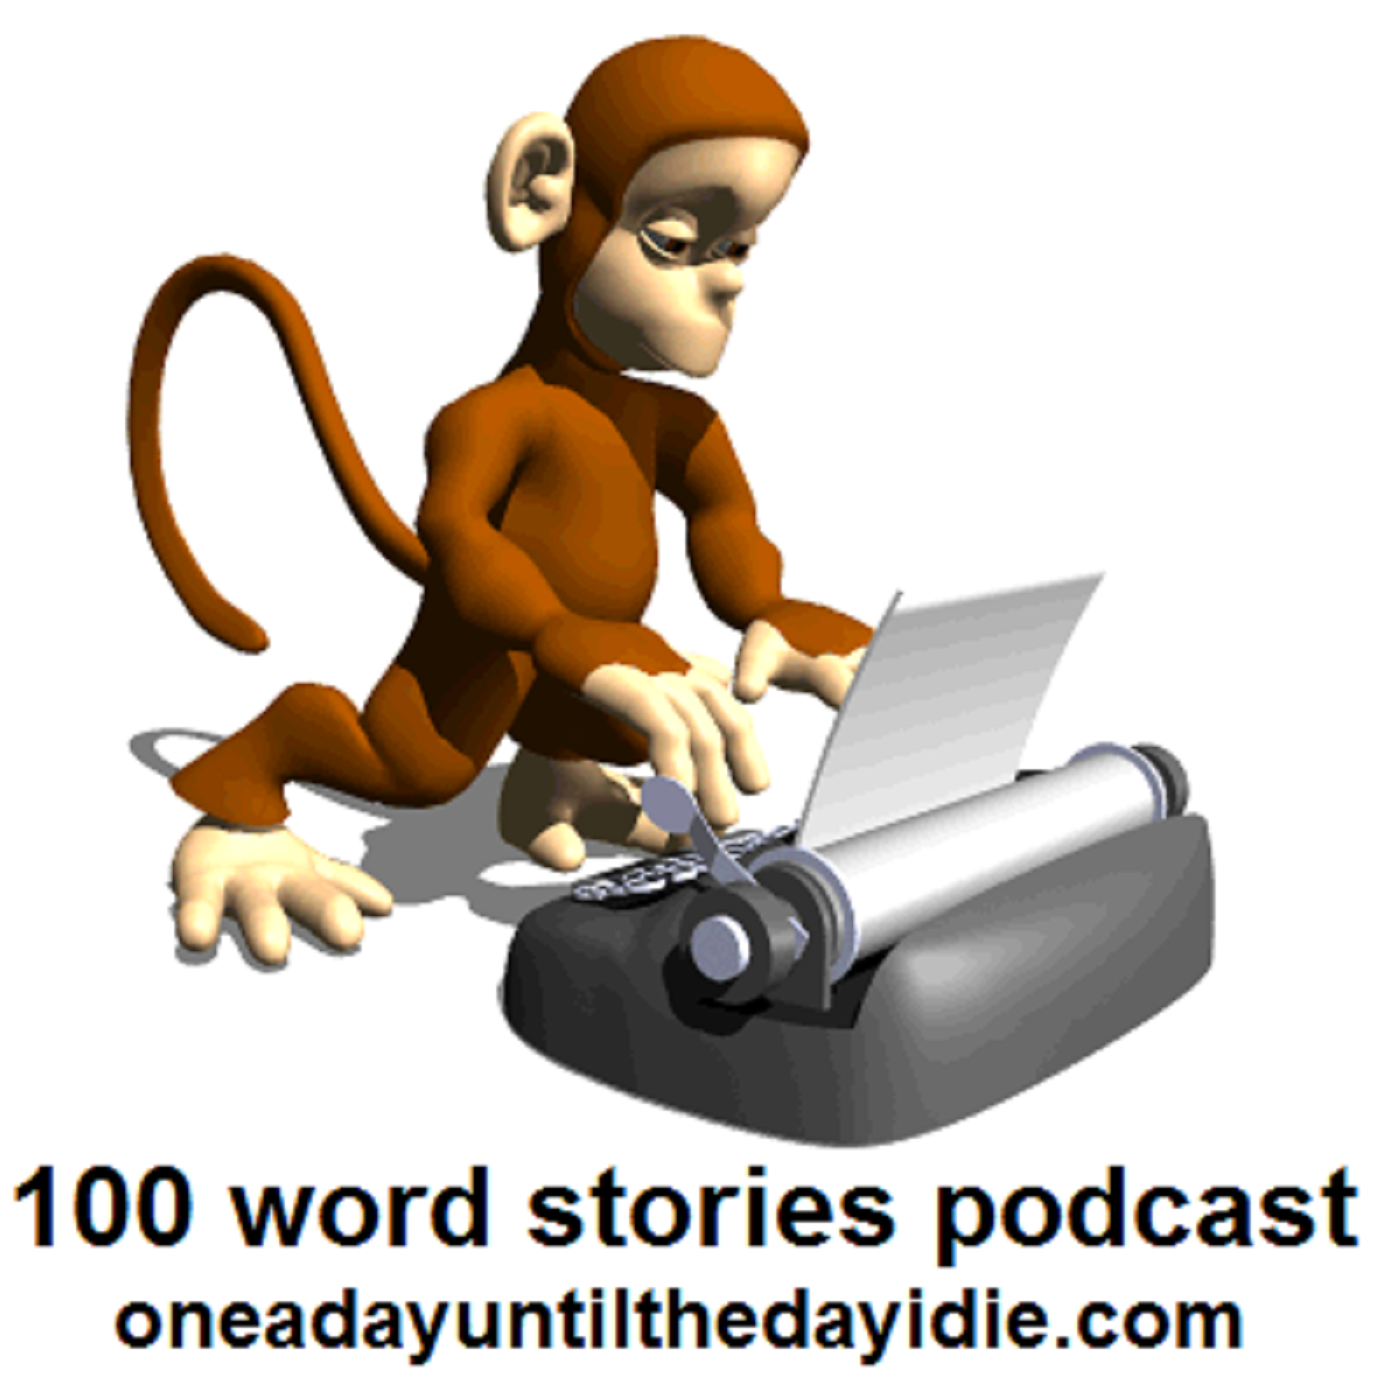 The 100 Word Stories Podcast